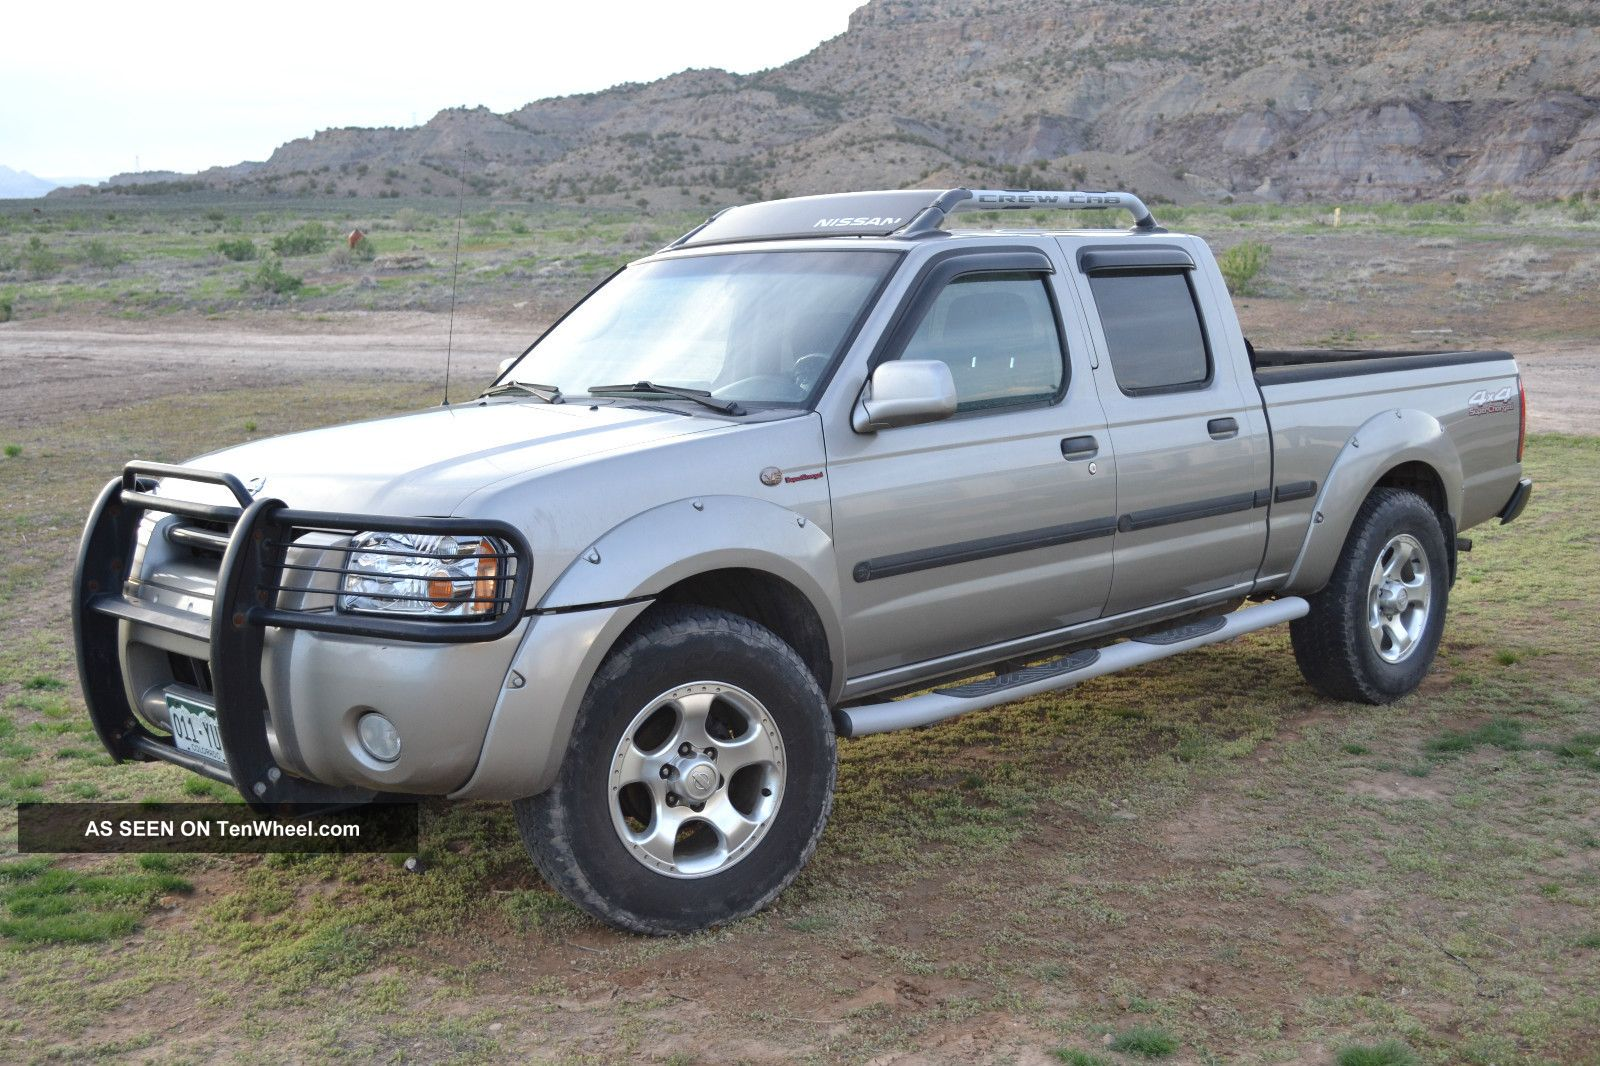 2002 Nissan Frontier Crew Cab Supercharged 4x4